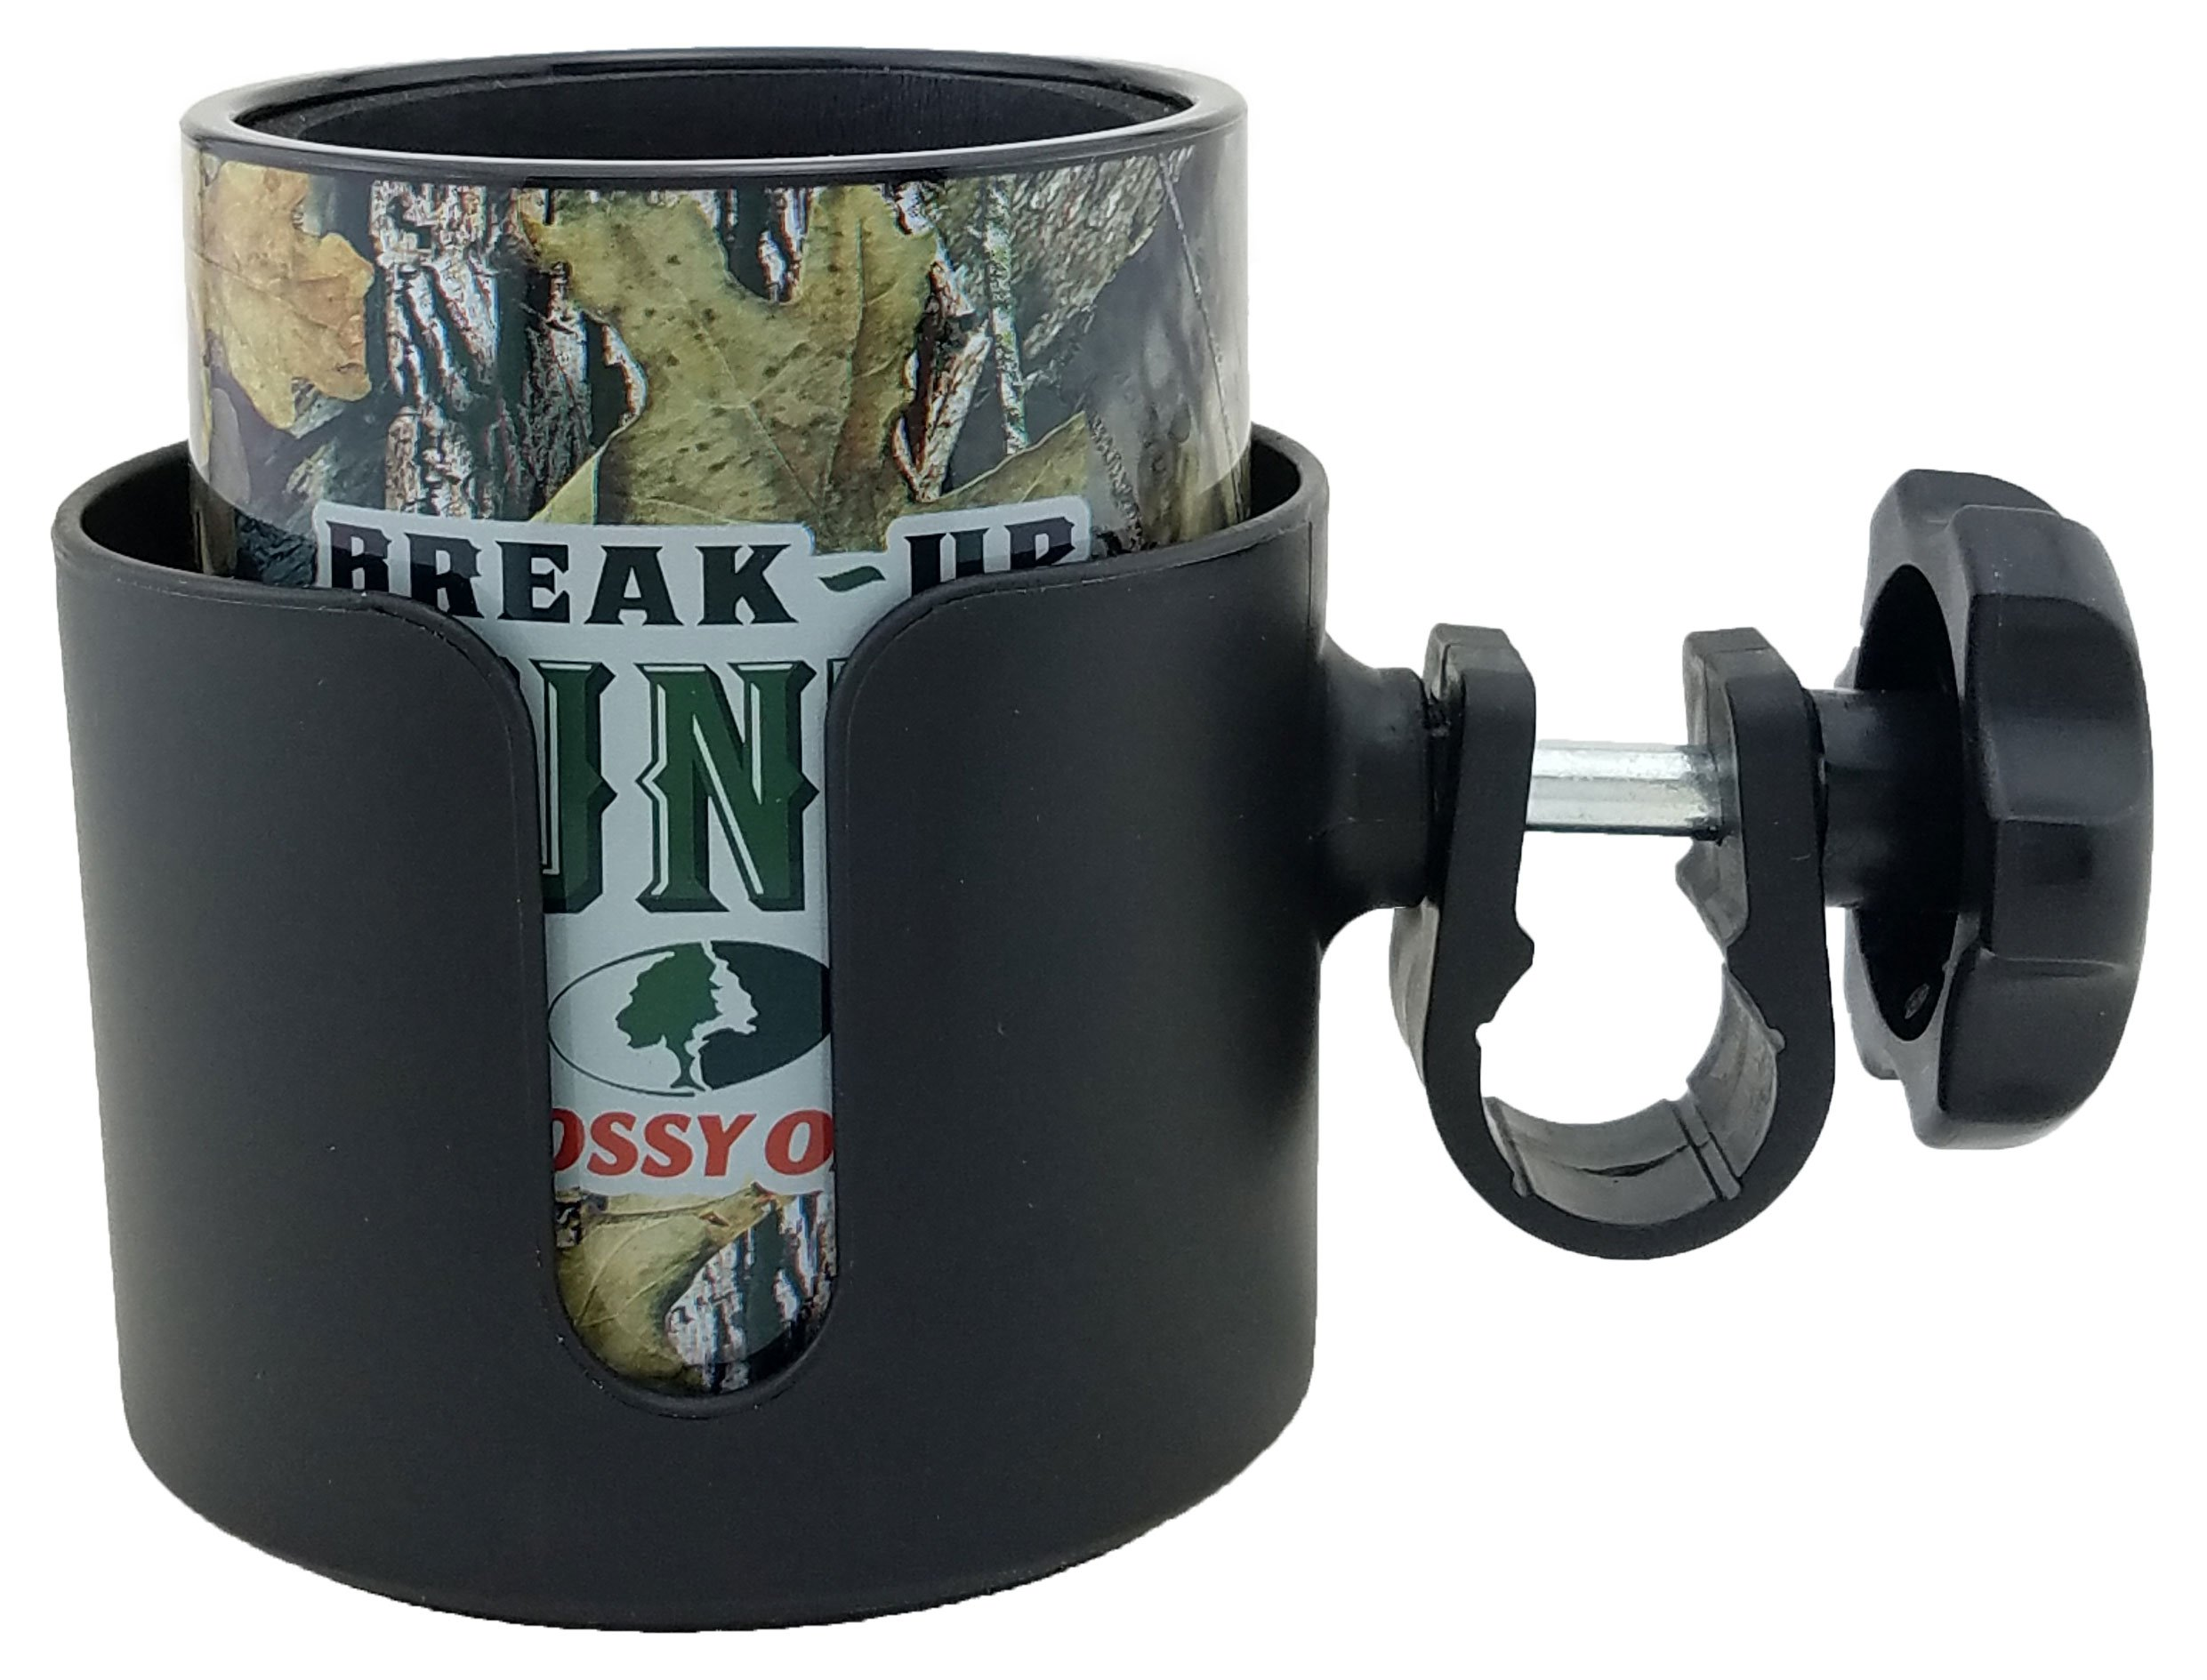 Keepzit Kooler Combo Pack Universal Cup Holder with Insulated Drink Holder 12 to 16.9 Ounce Cans and Bottles (Break-up Country)